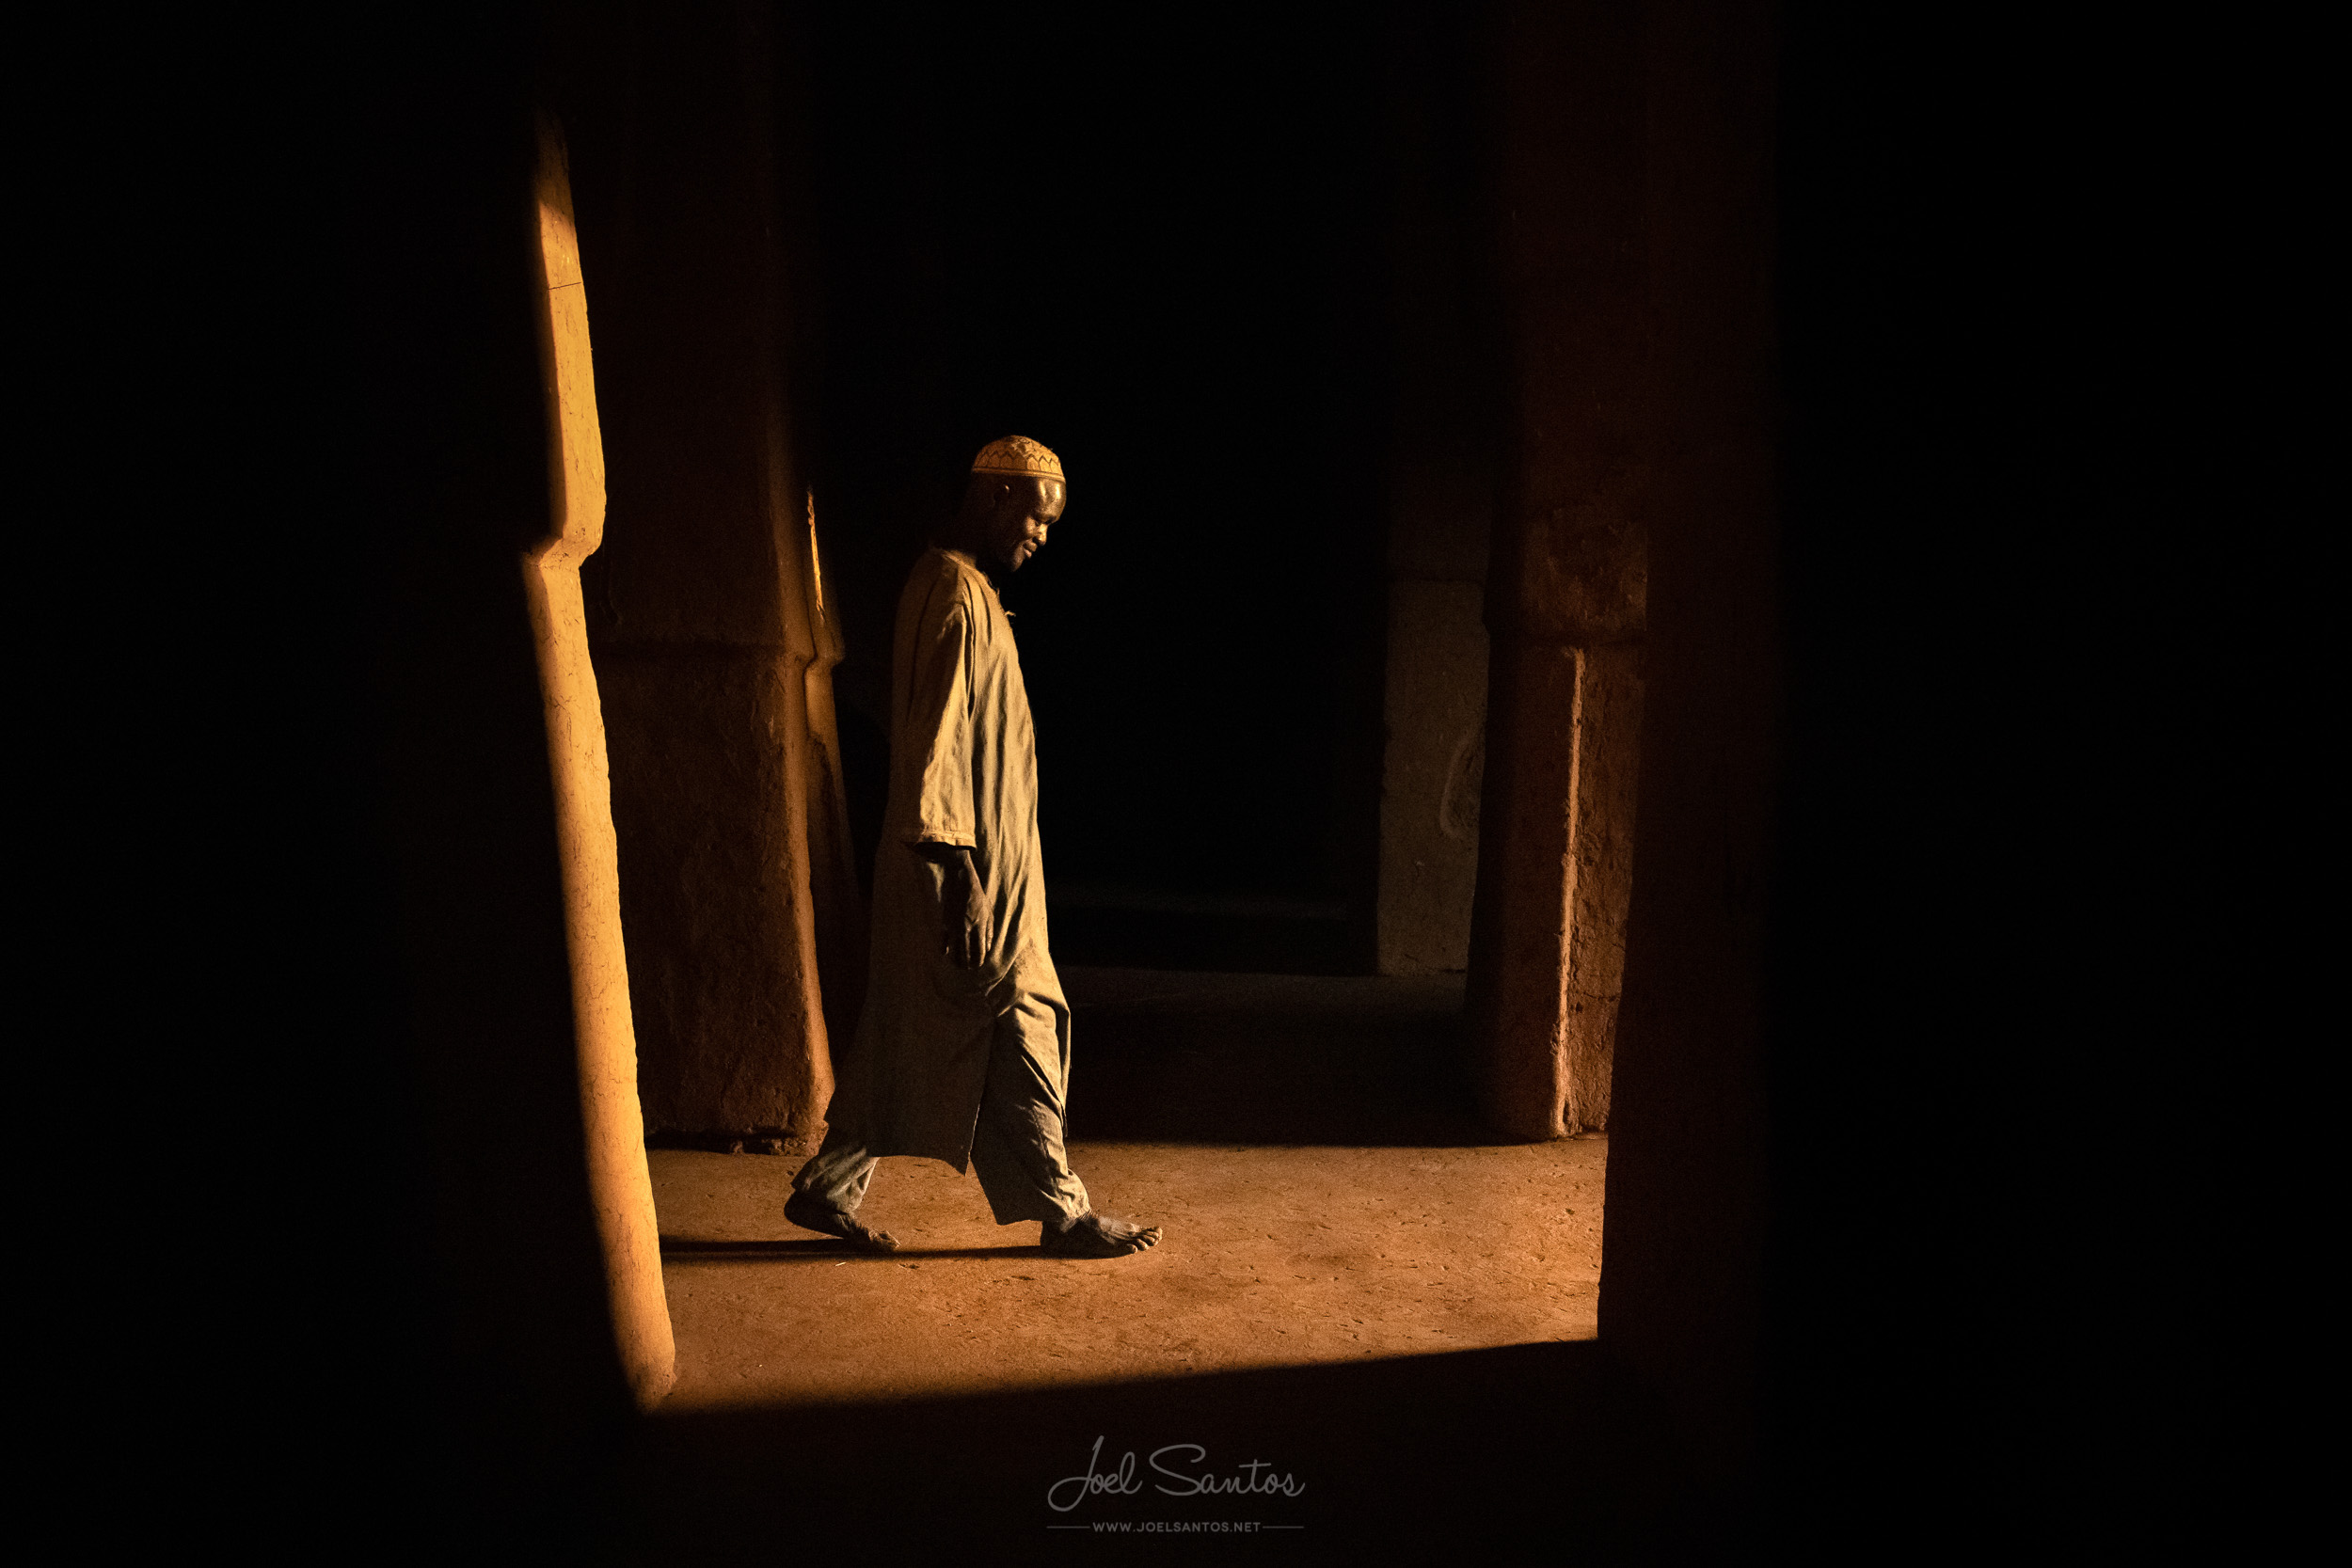 Man walking inside a Mosque, Niger